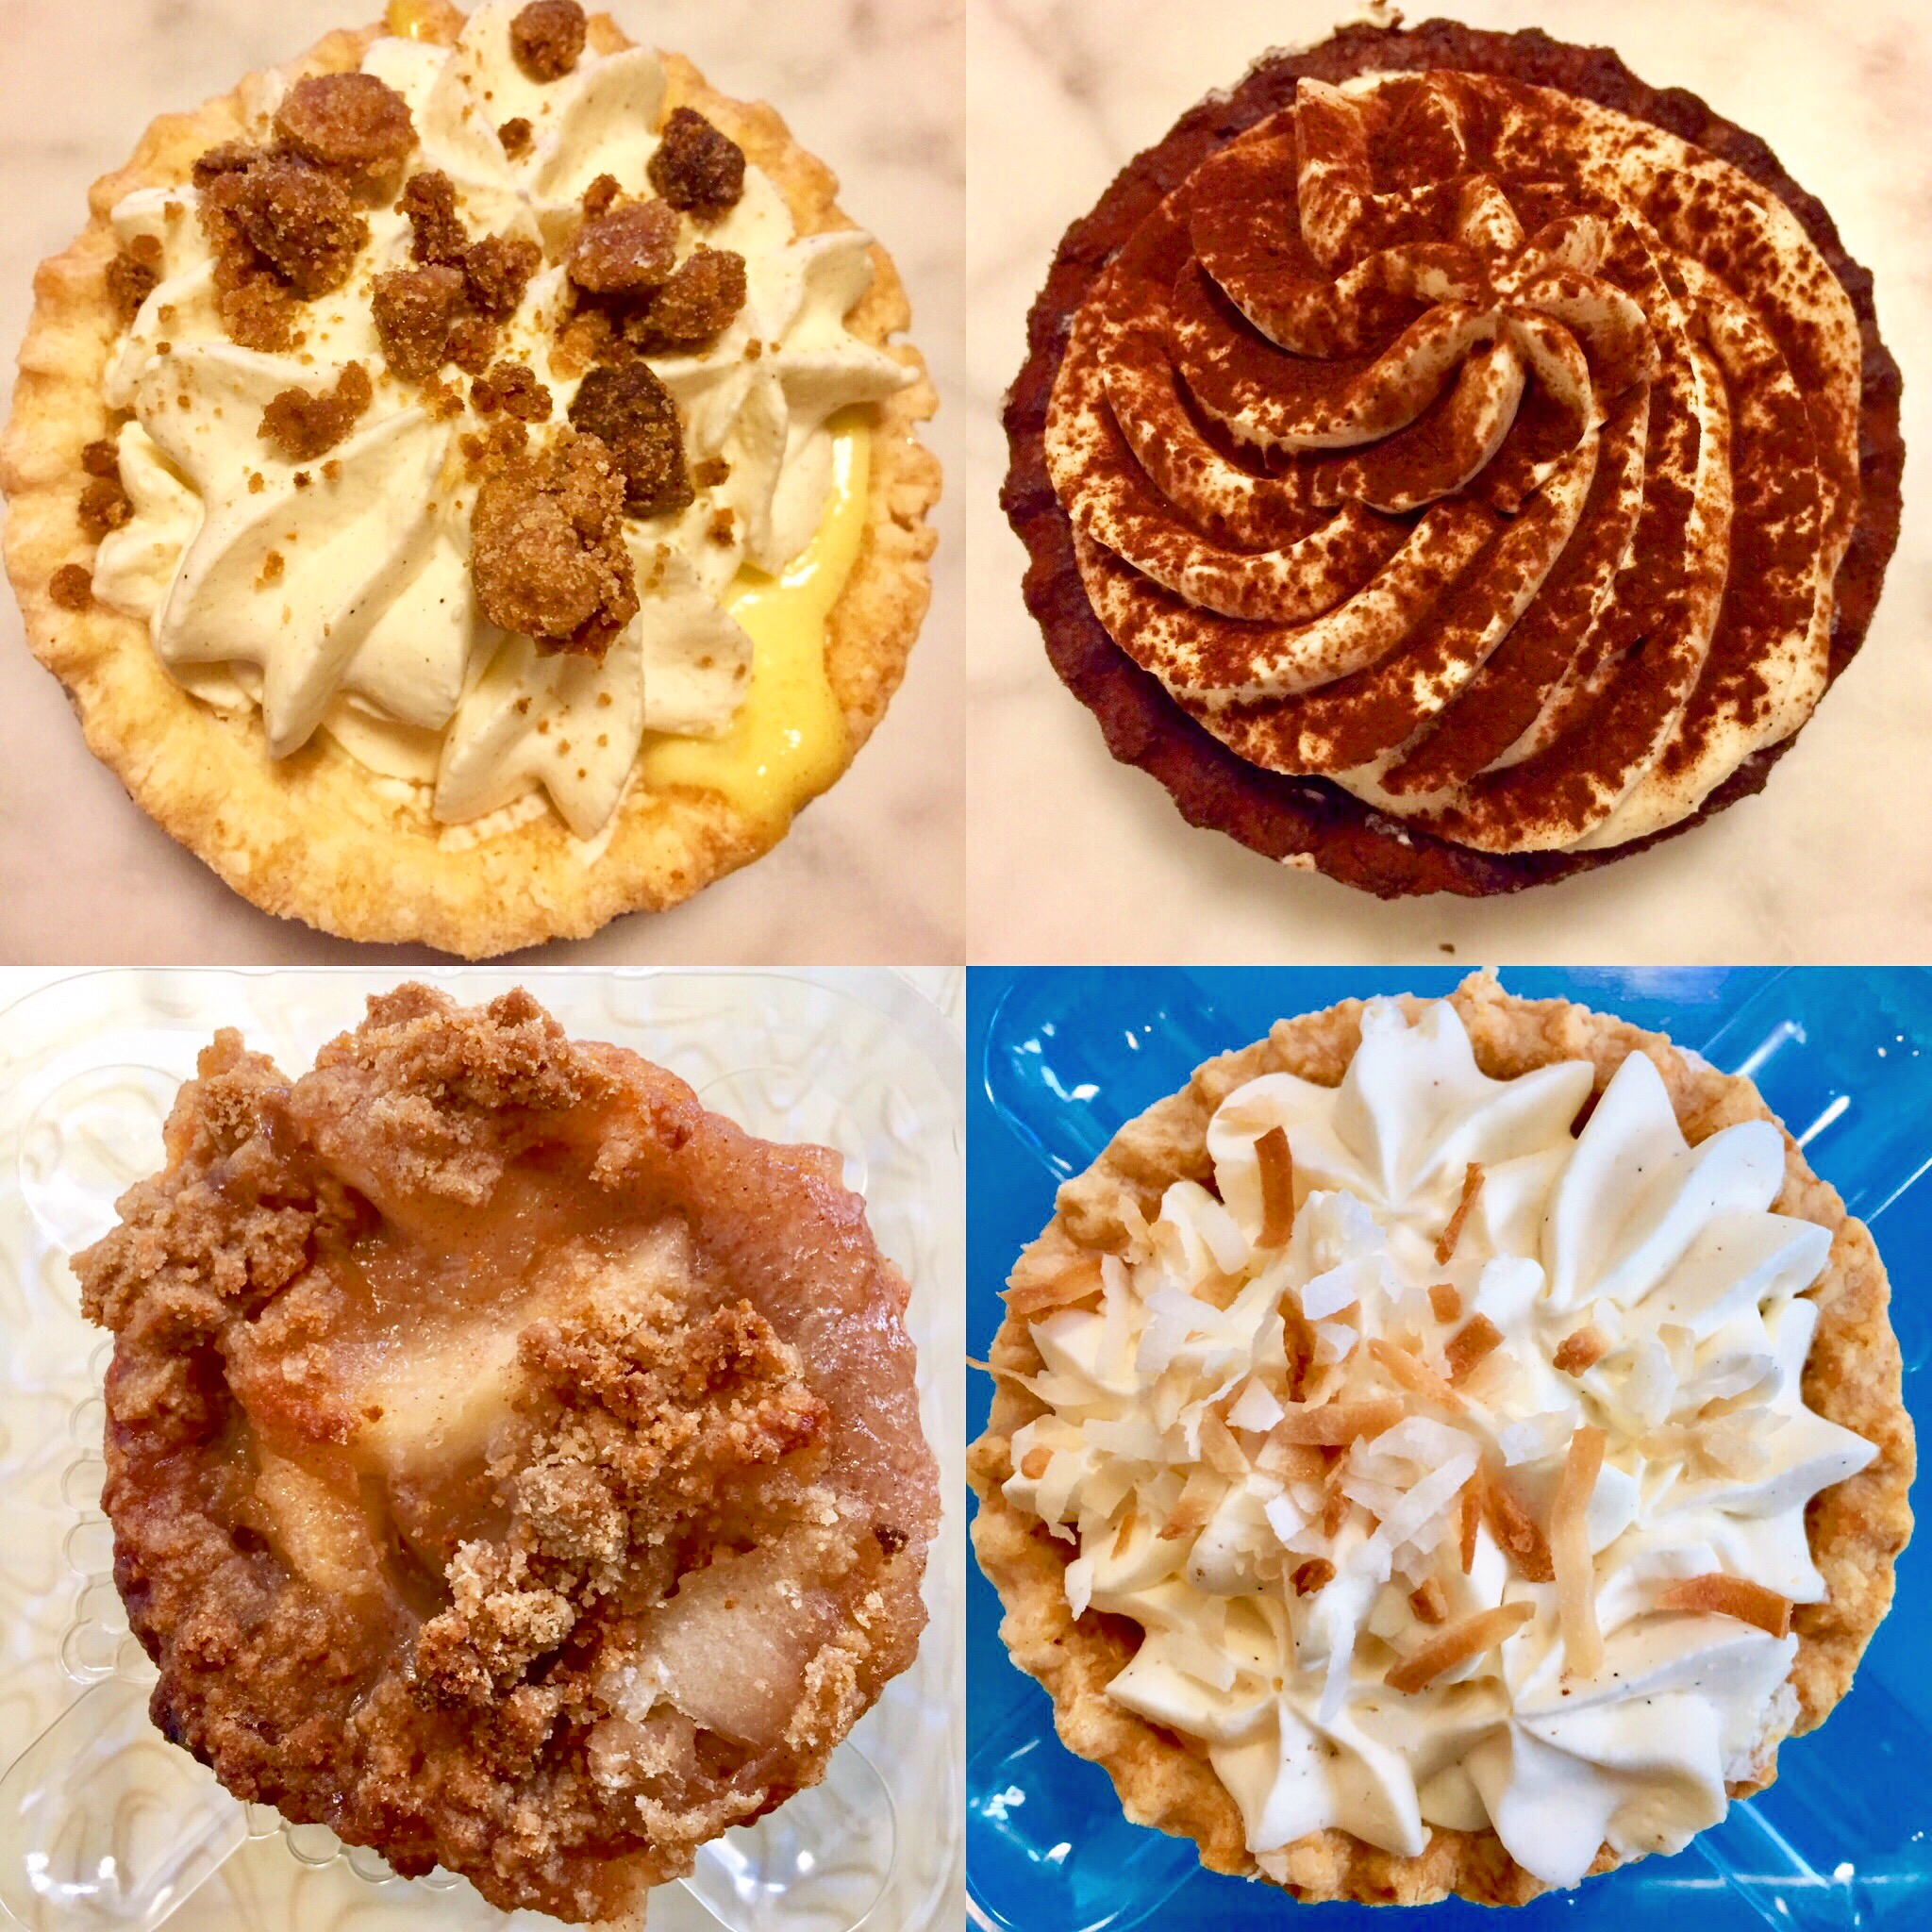 chicken fight blue ribbon vs hill country traveling jared what s better than pie four mini pies all to yourself eggnog chocolate